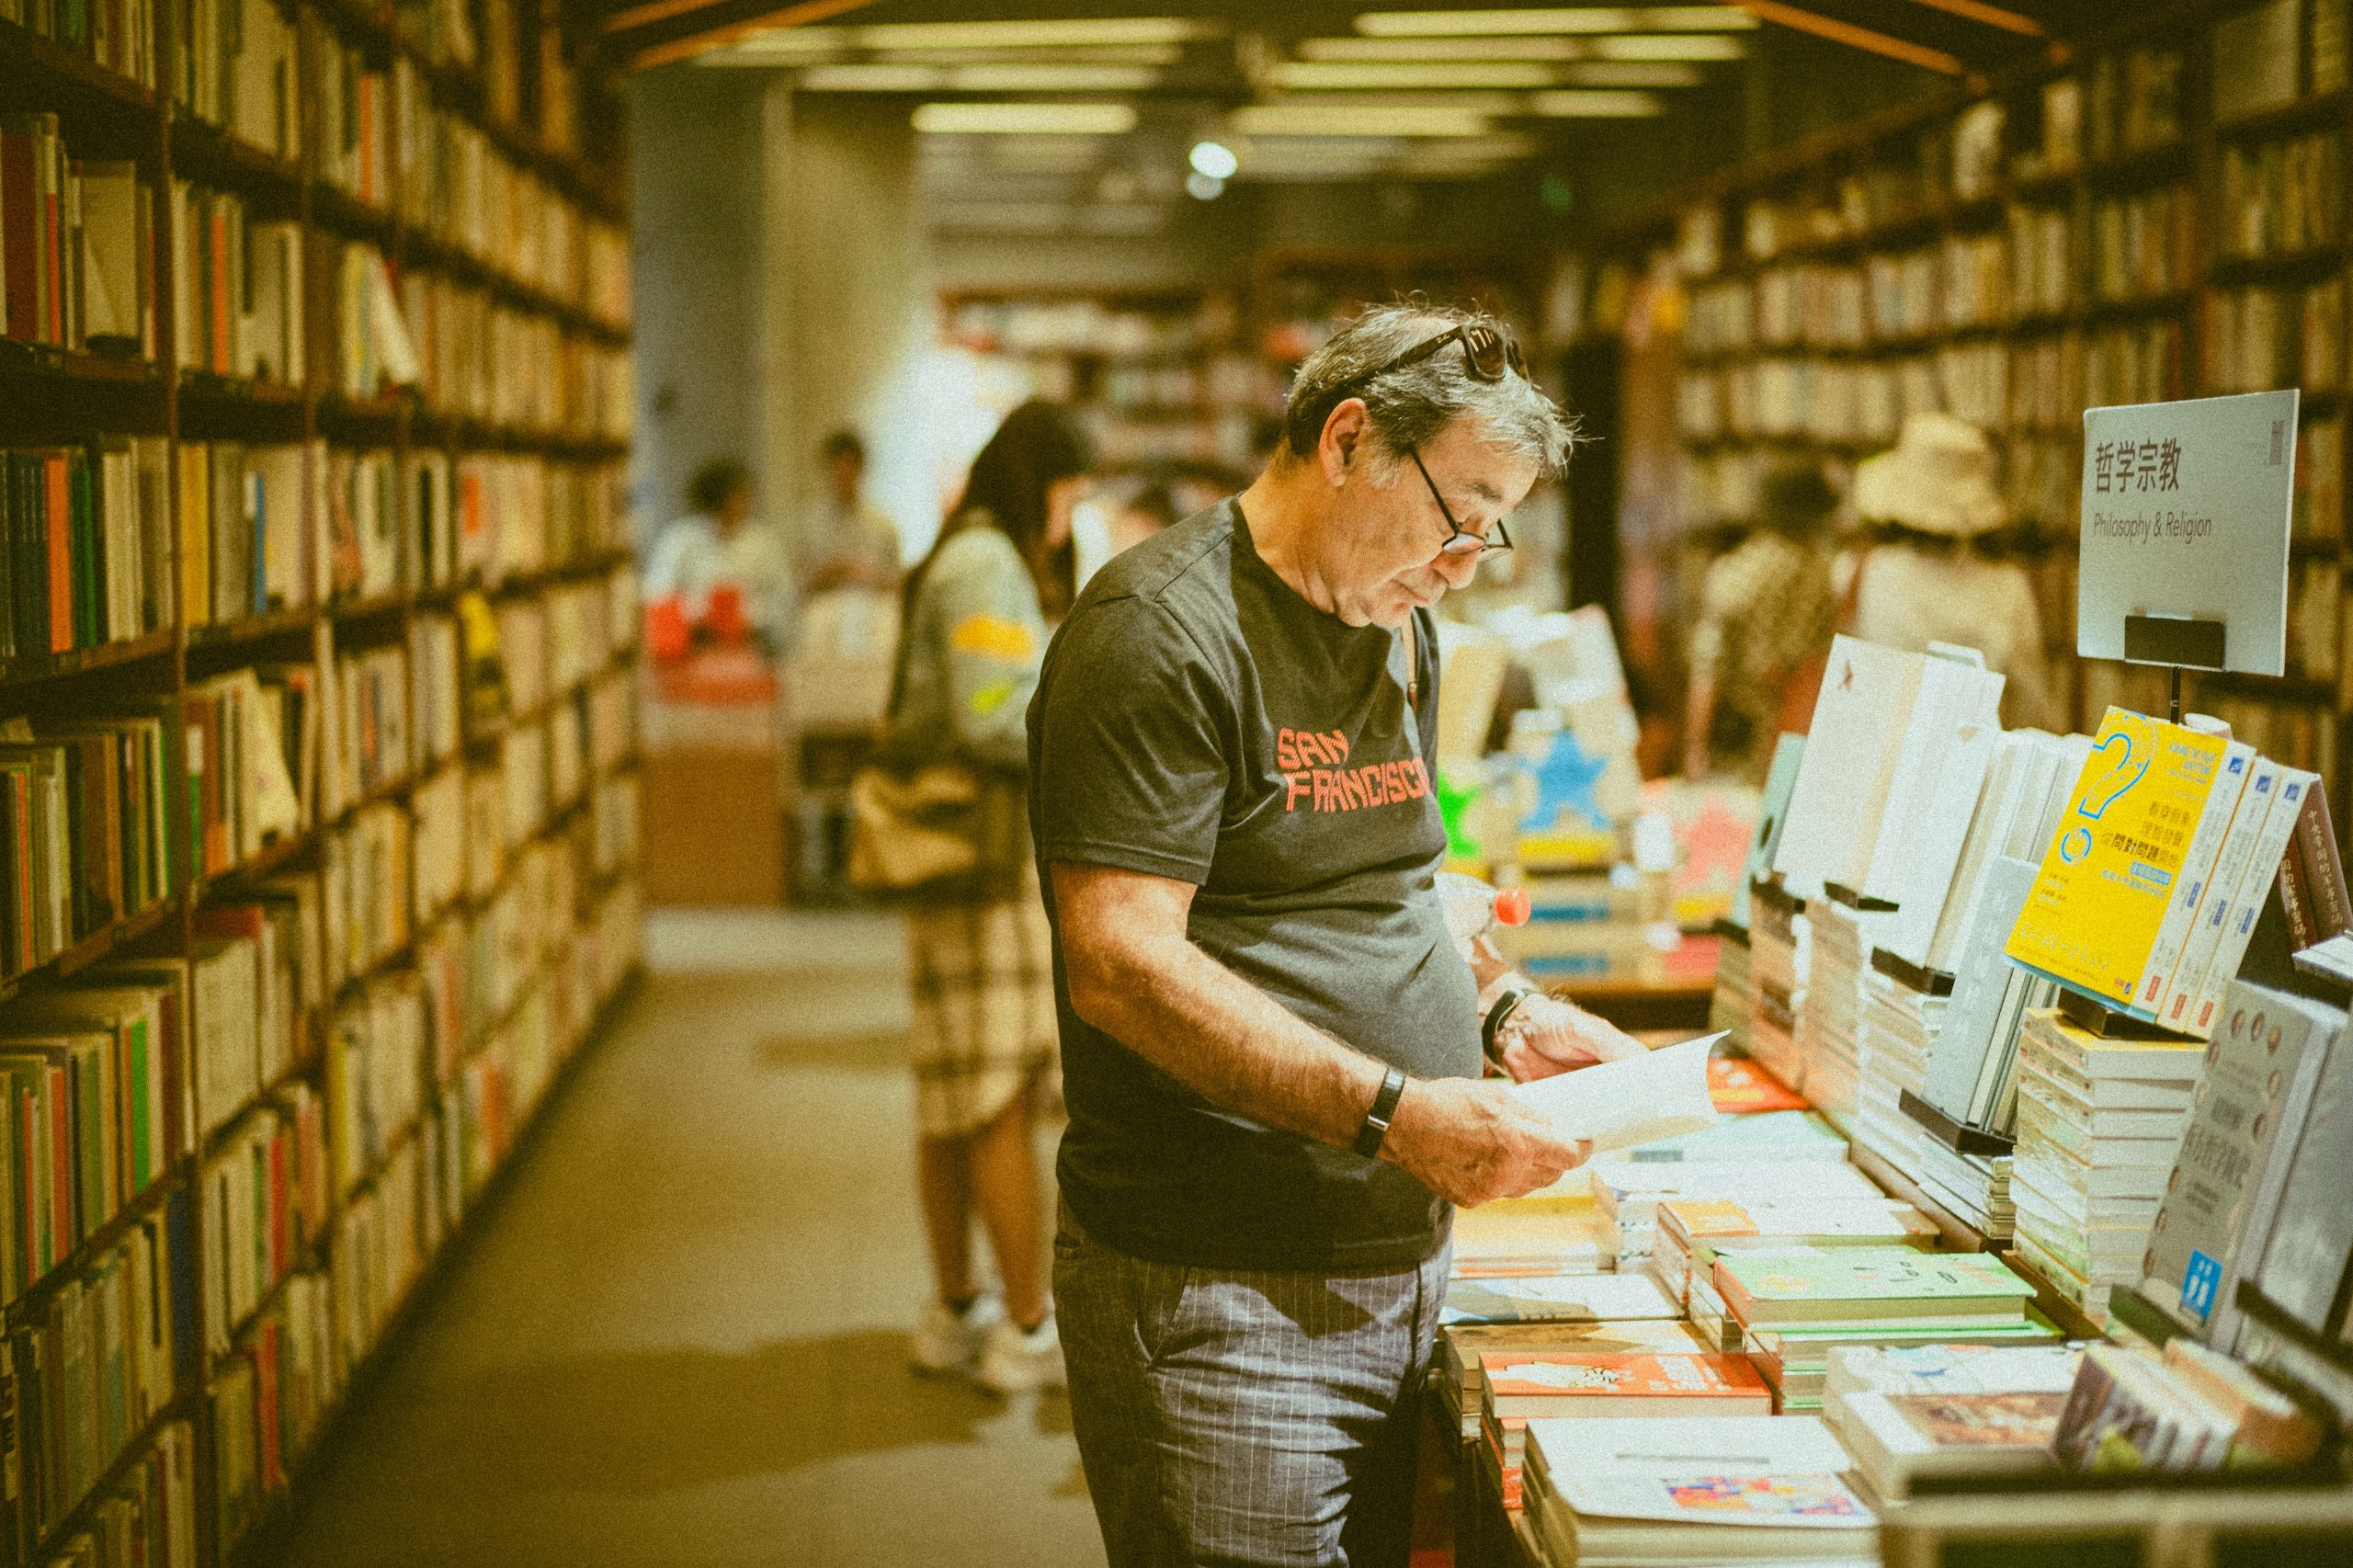 Man Shopping In Record Store Photographed by Kenny Luo found on Unsplash